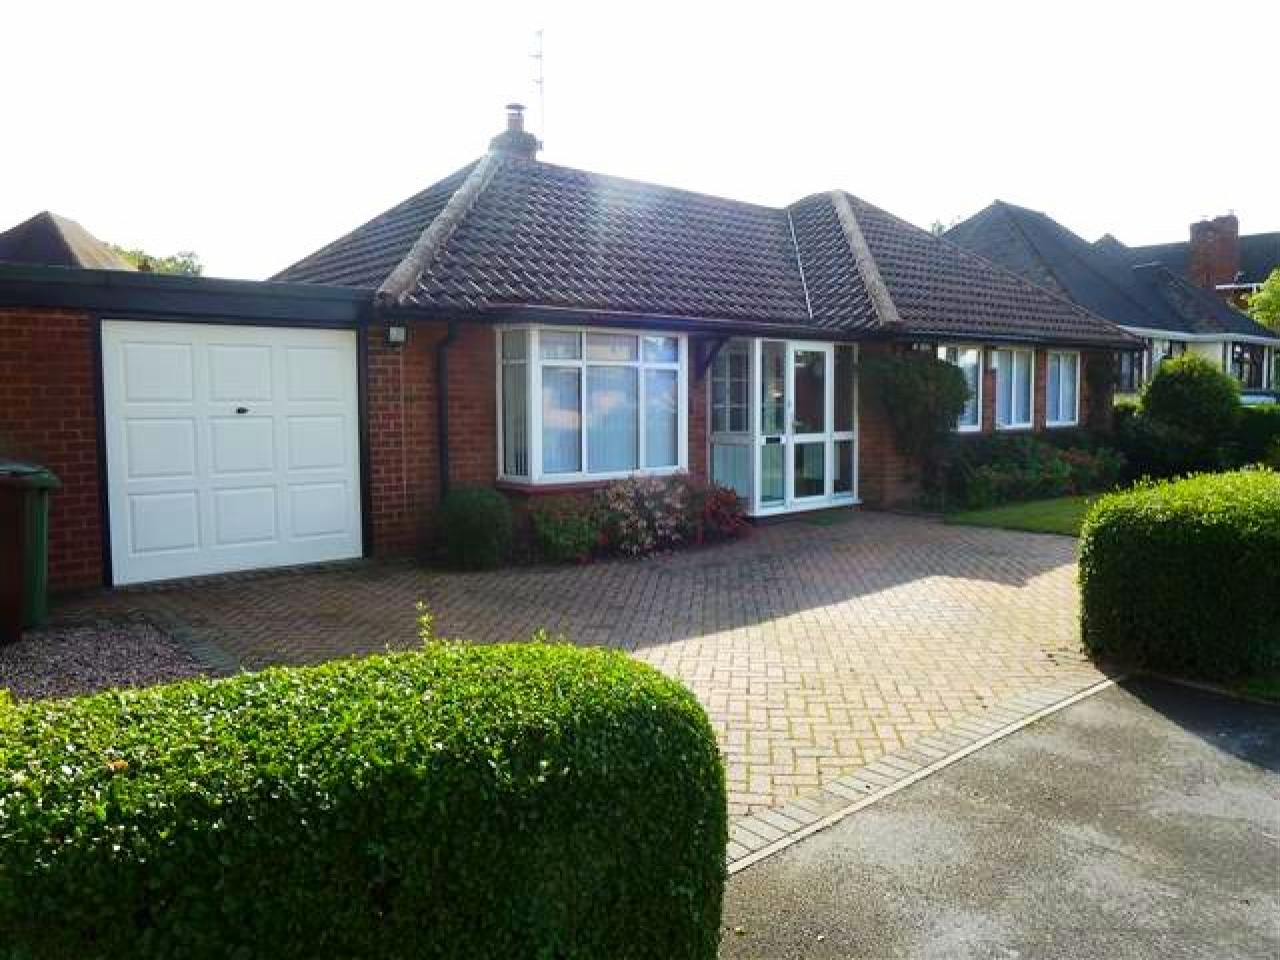 3 Bed Detached Bungalow To Rent - Photograph 1